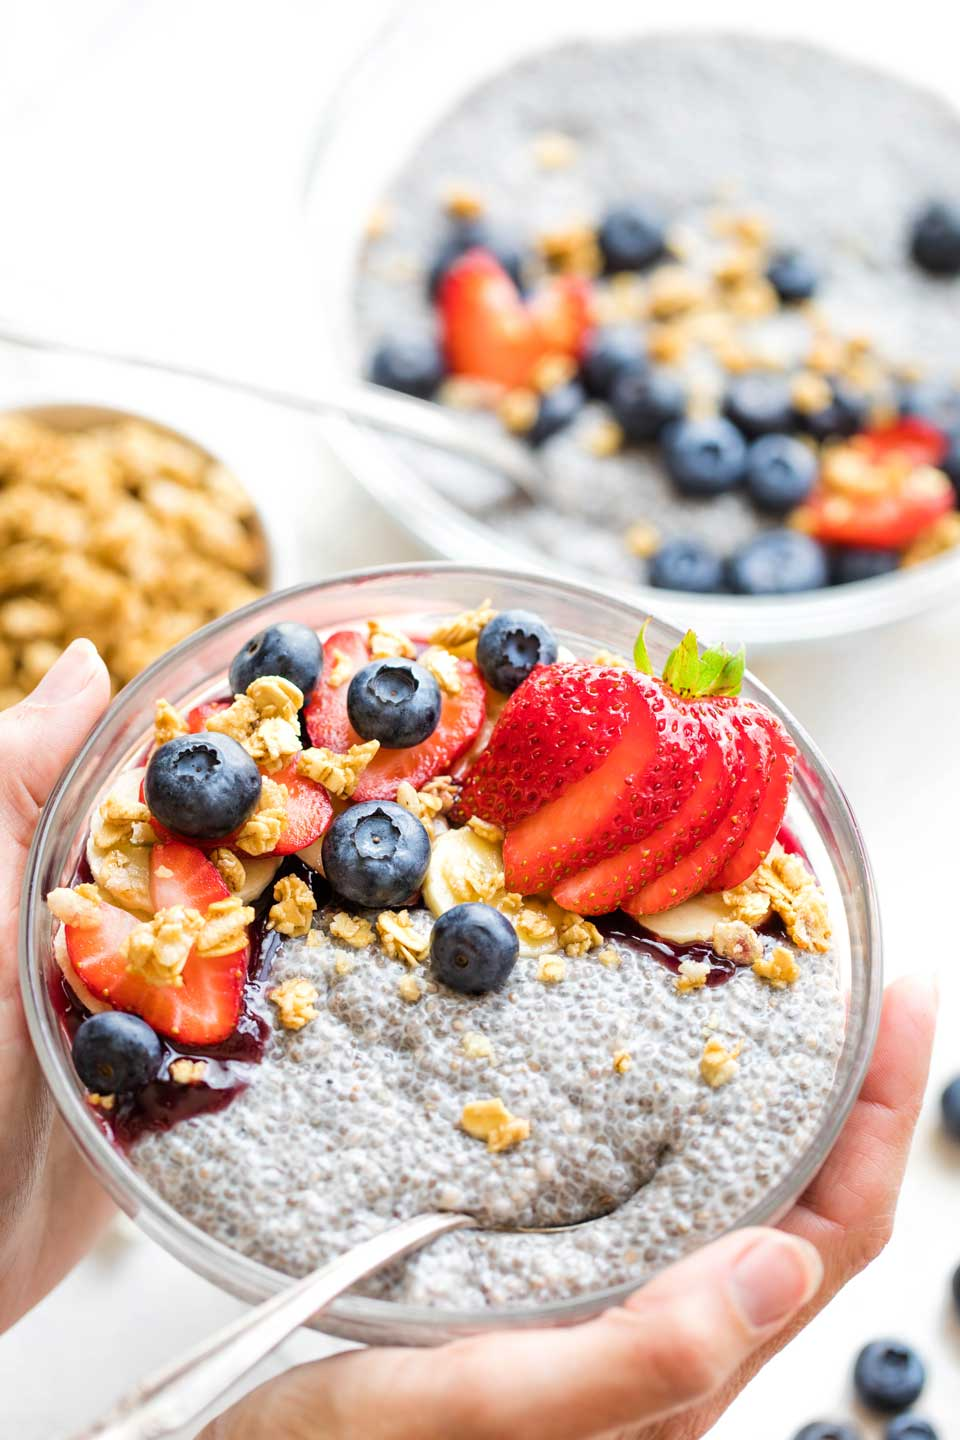 hands holding bowl of breakfast chia pudding, with serving bowl in background